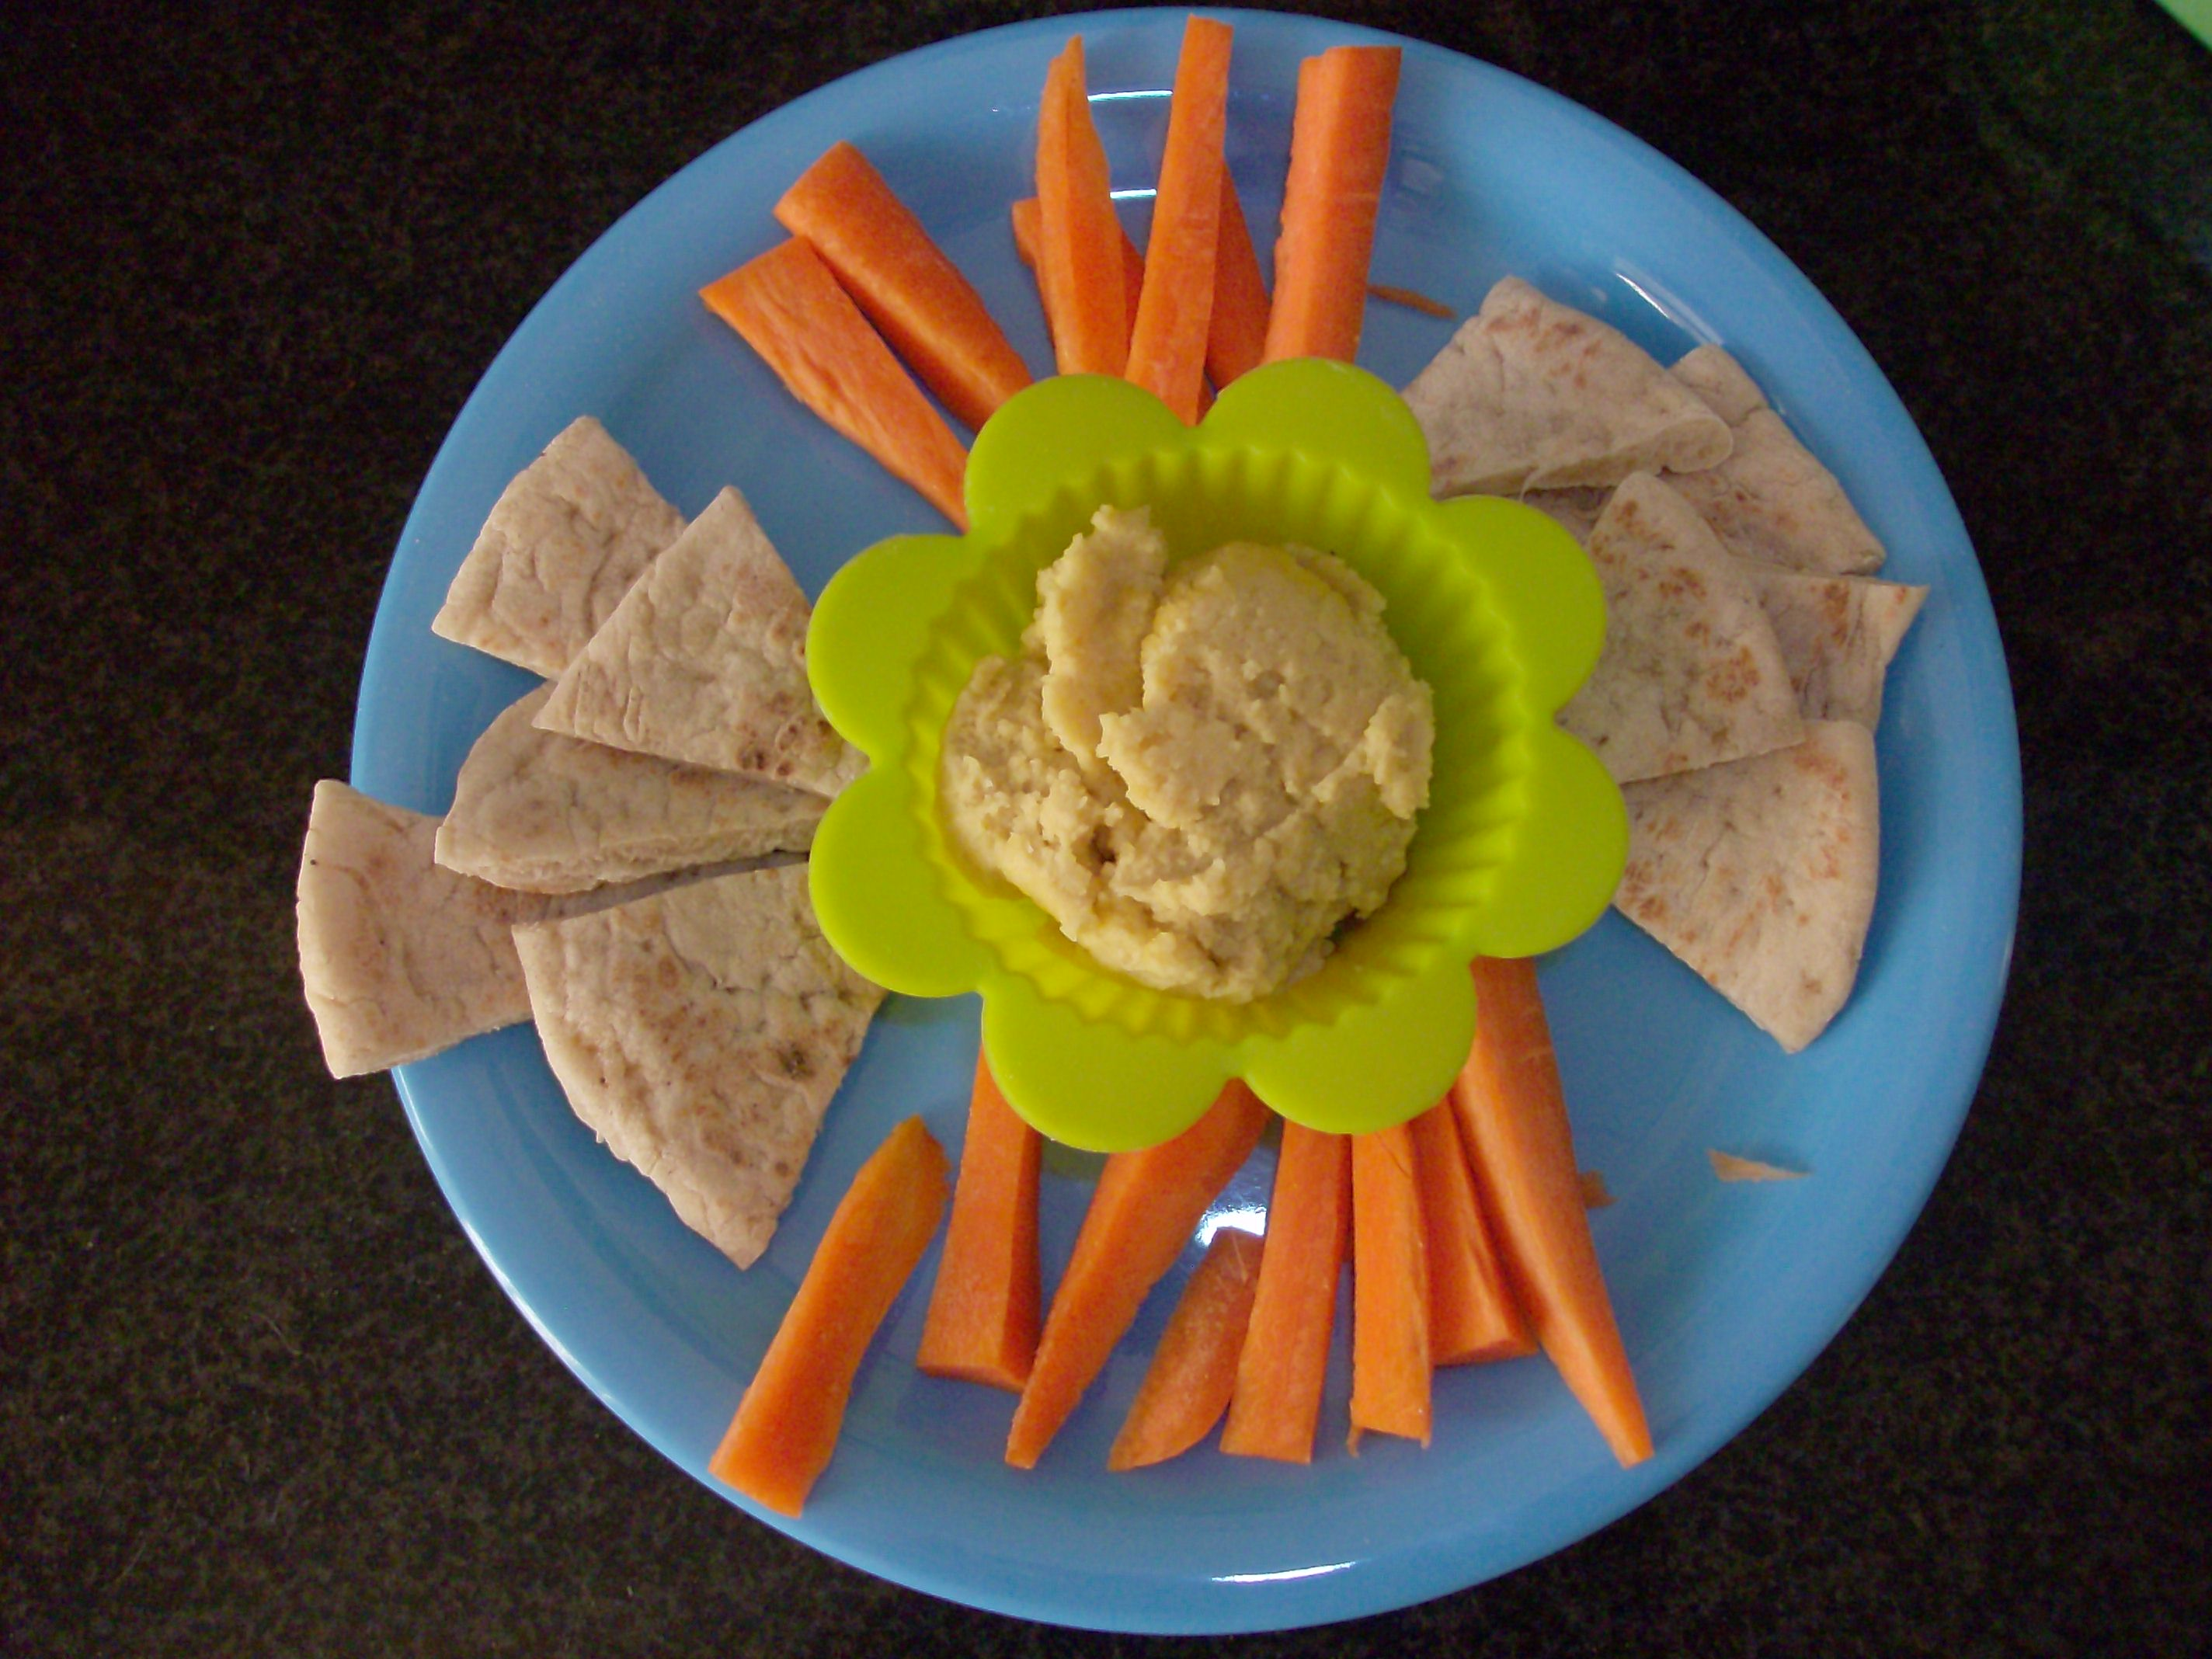 Muffin Tin Meal hummus